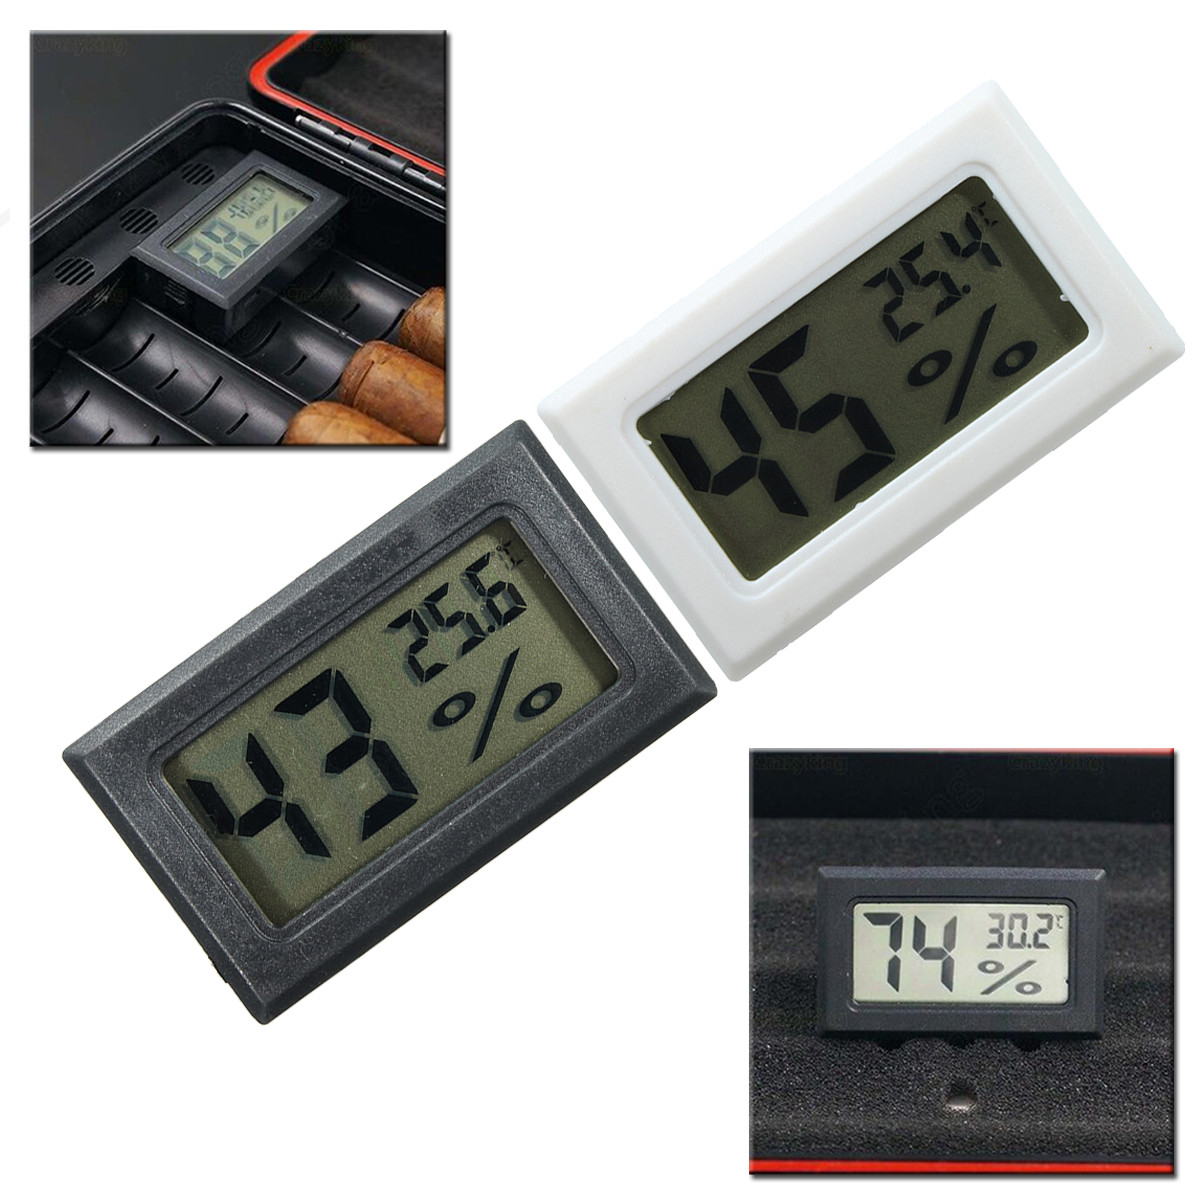 Digital Cigar Hygrometer Thermometer Humidity Monitor Meter for Humidor